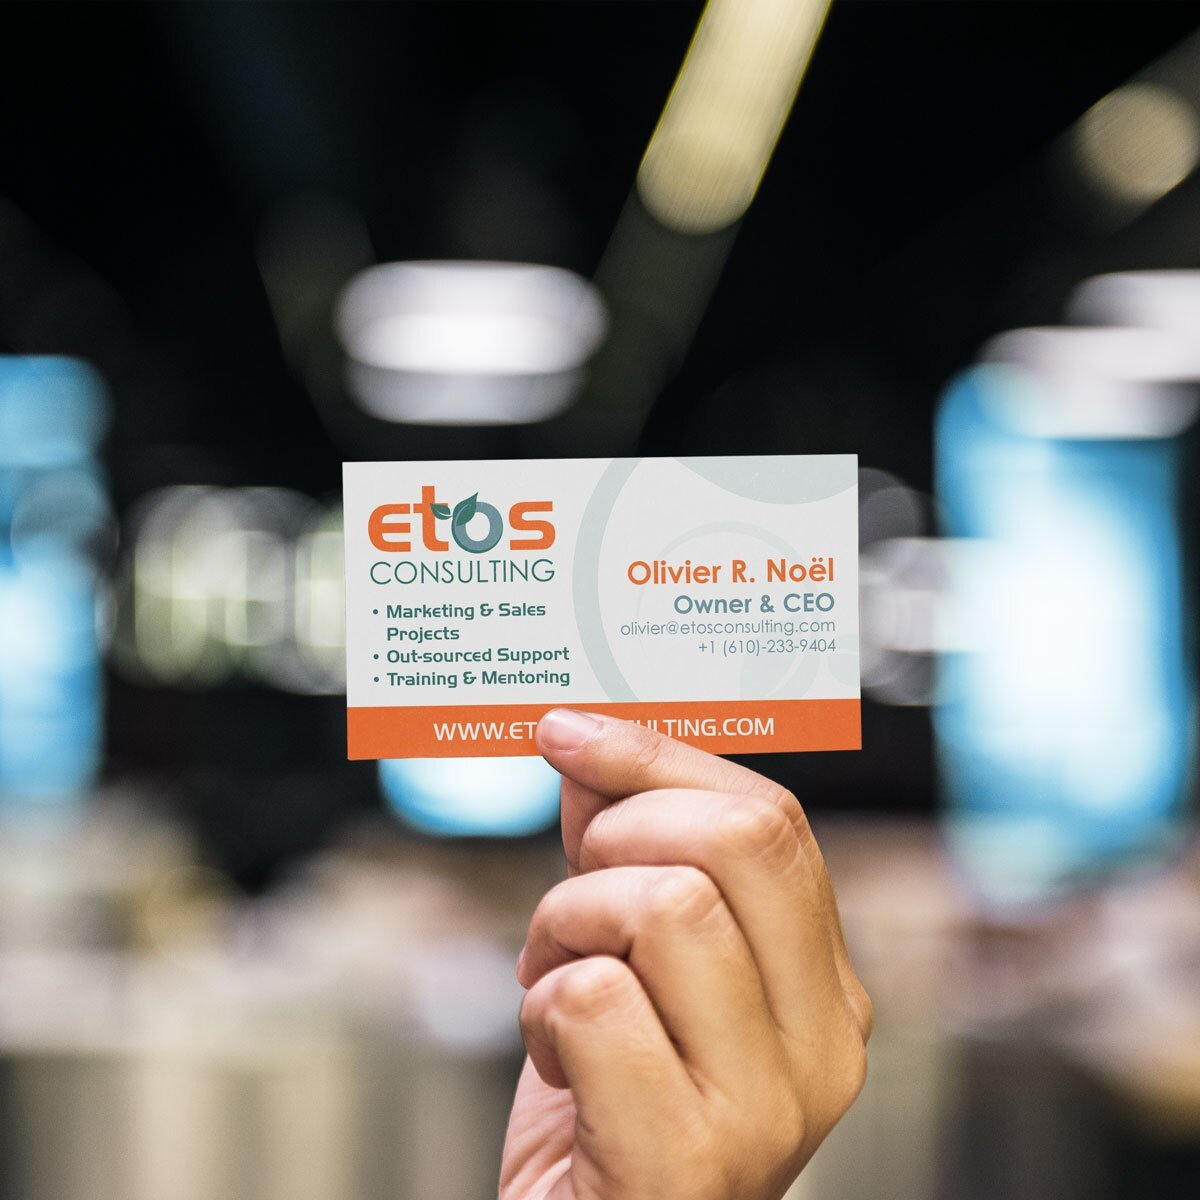 ETOS Consulting Business Card Design by BrandSwan, a graphic design company